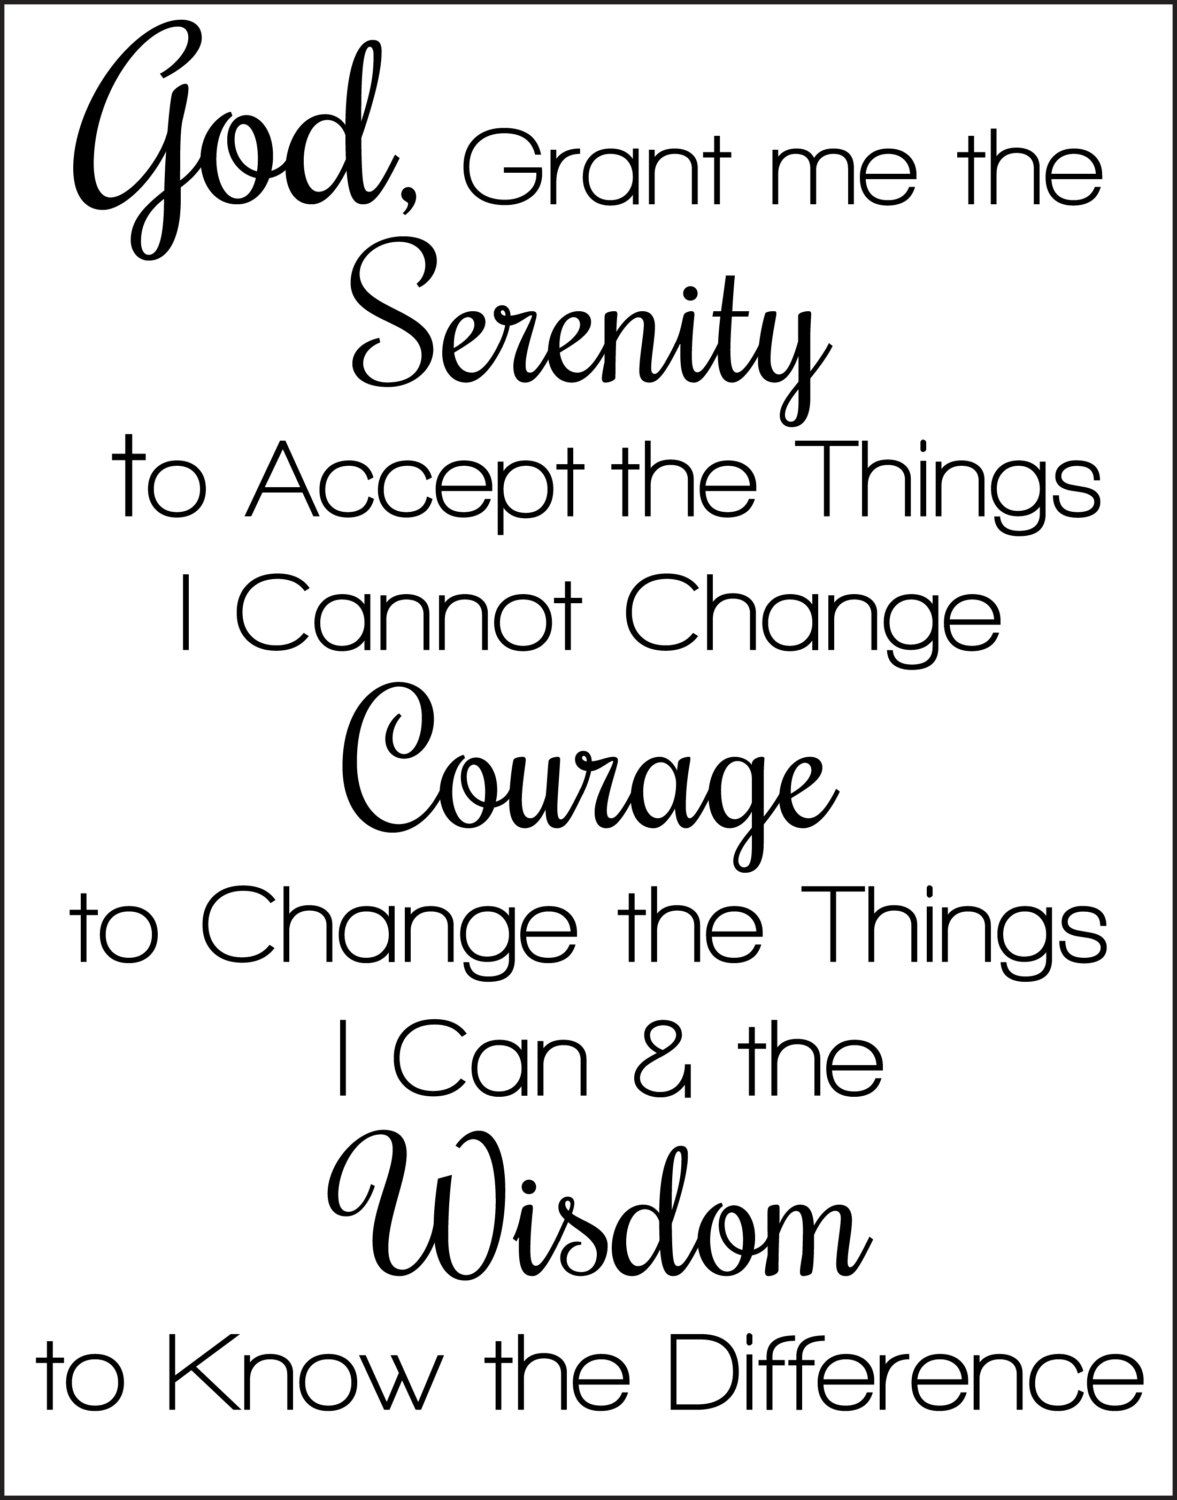 photo relating to Serenity Prayer Printable identify Serenity Prayer Printable tattoo Options Serenity prayer